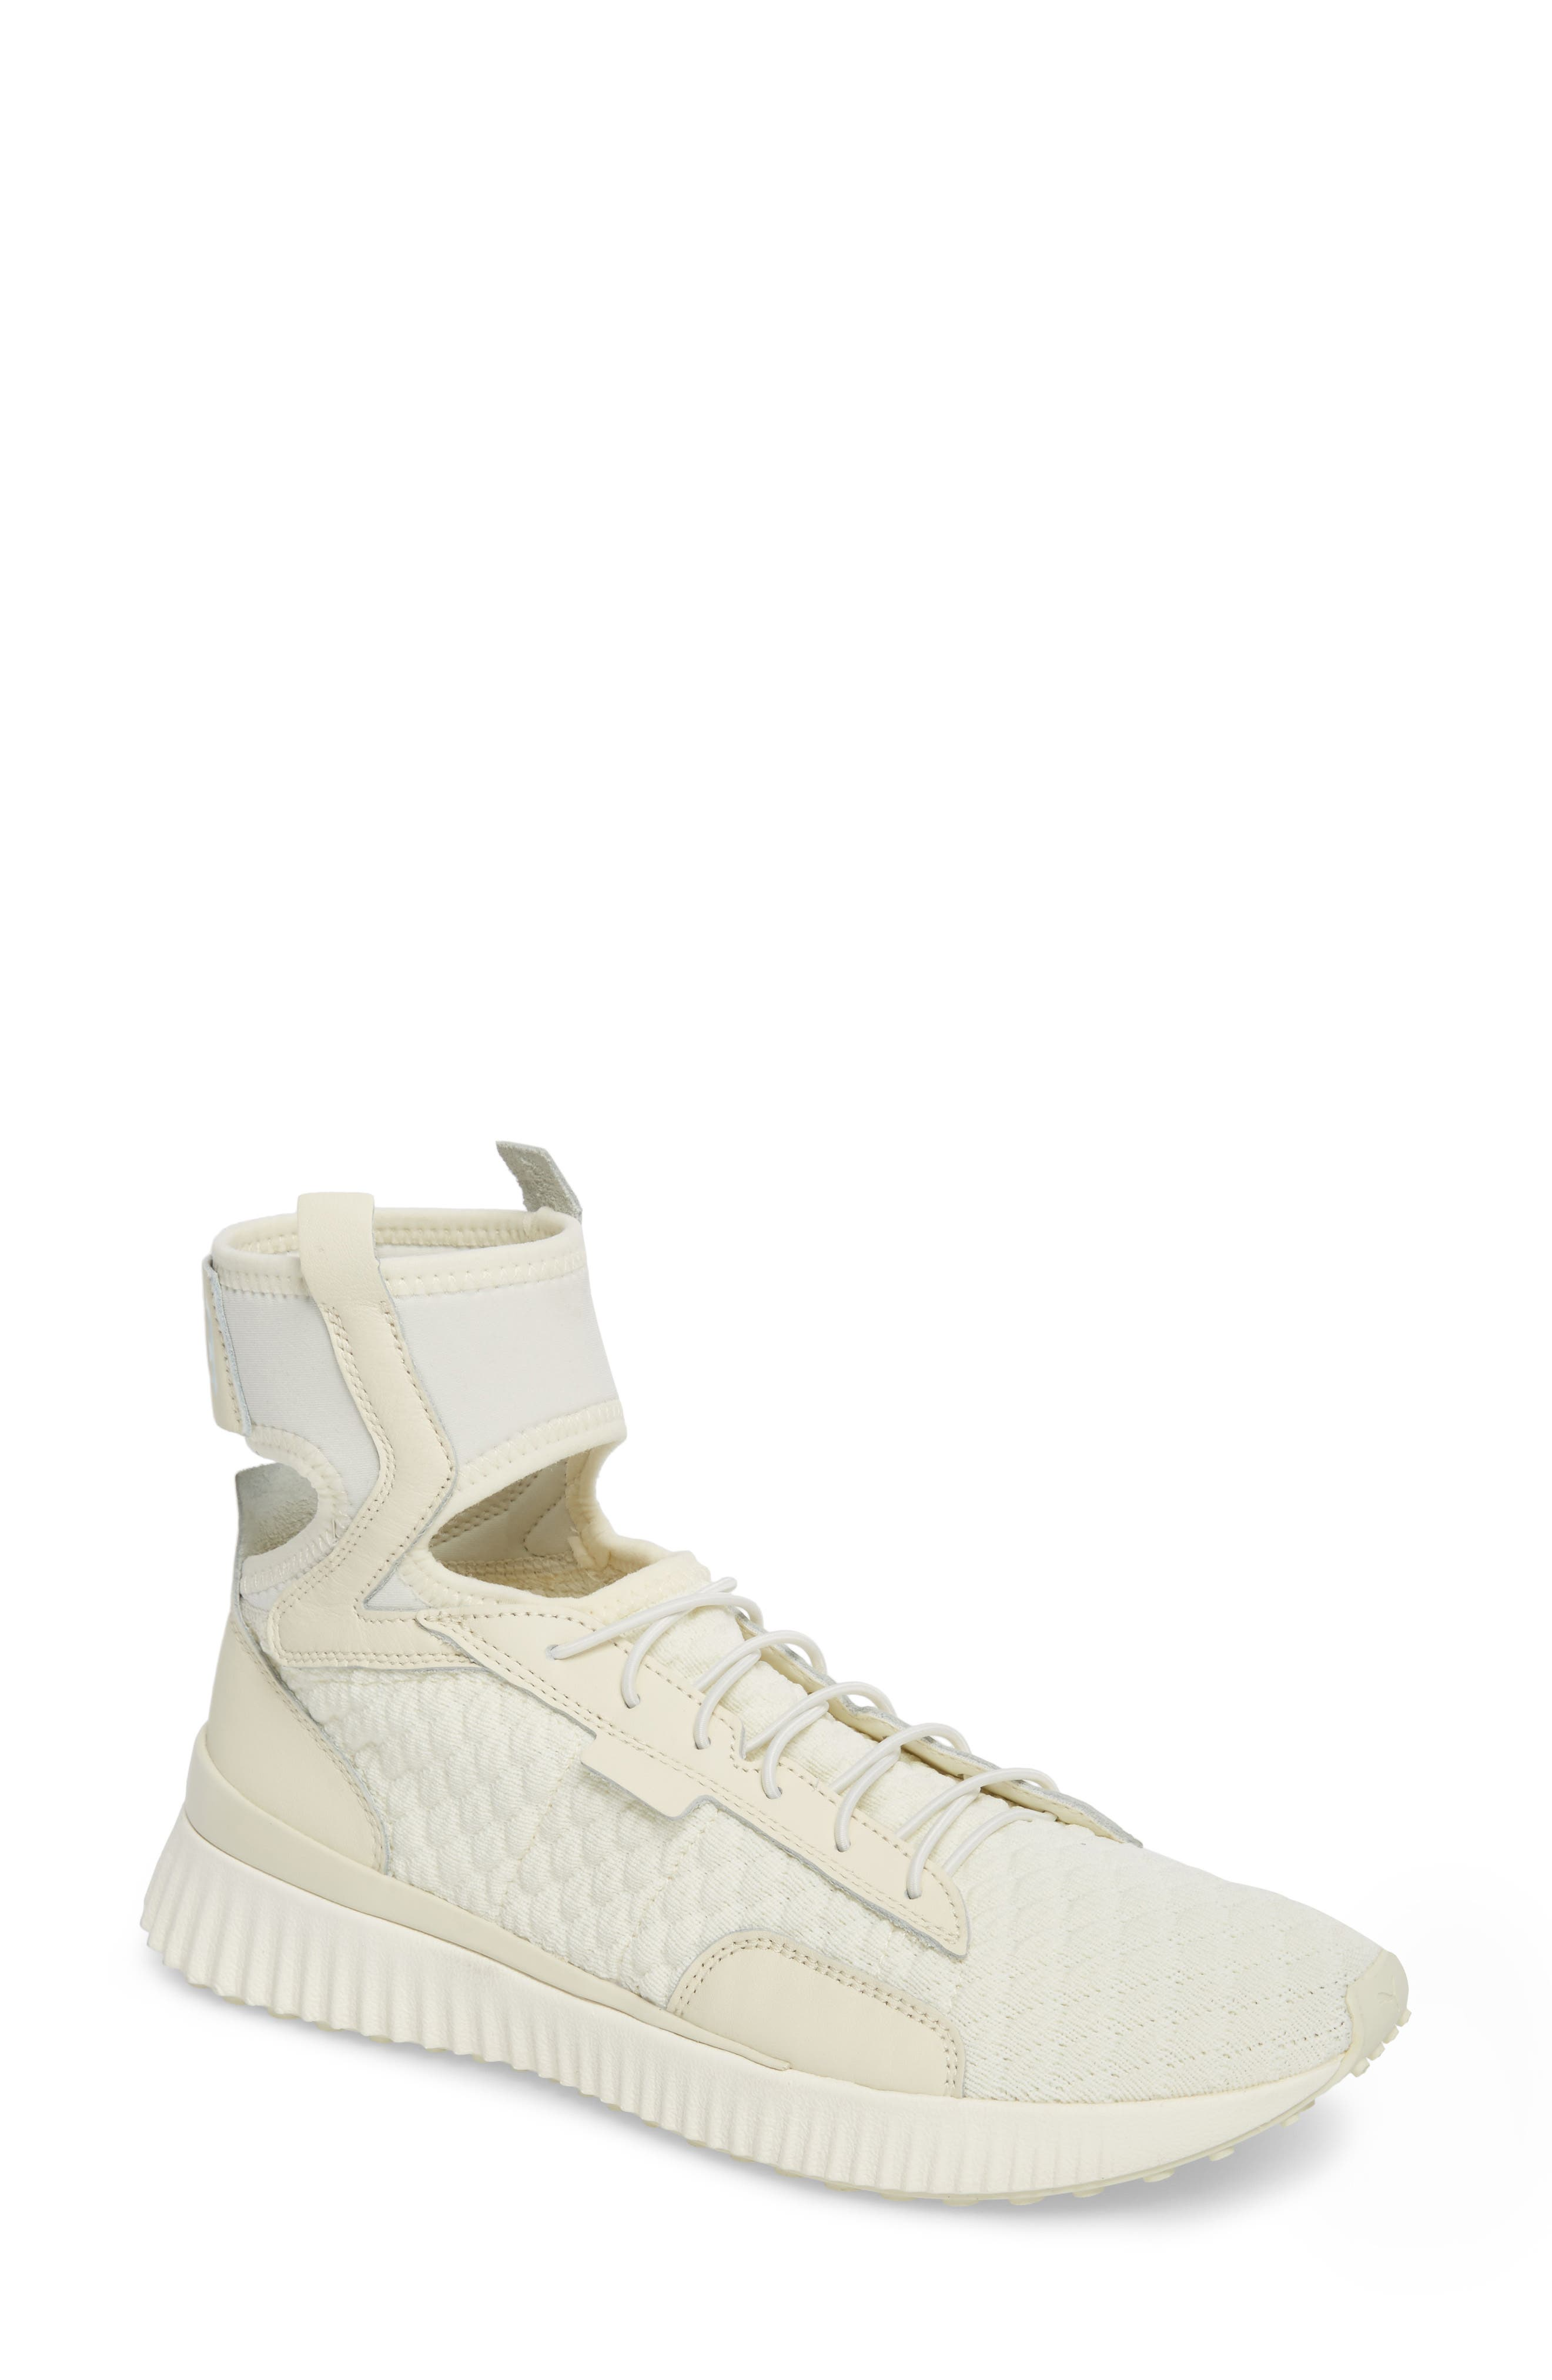 FENTY PUMA by Rihanna High Top Sneaker,                             Main thumbnail 1, color,                             Vanilla Ice/ Sterling Blue